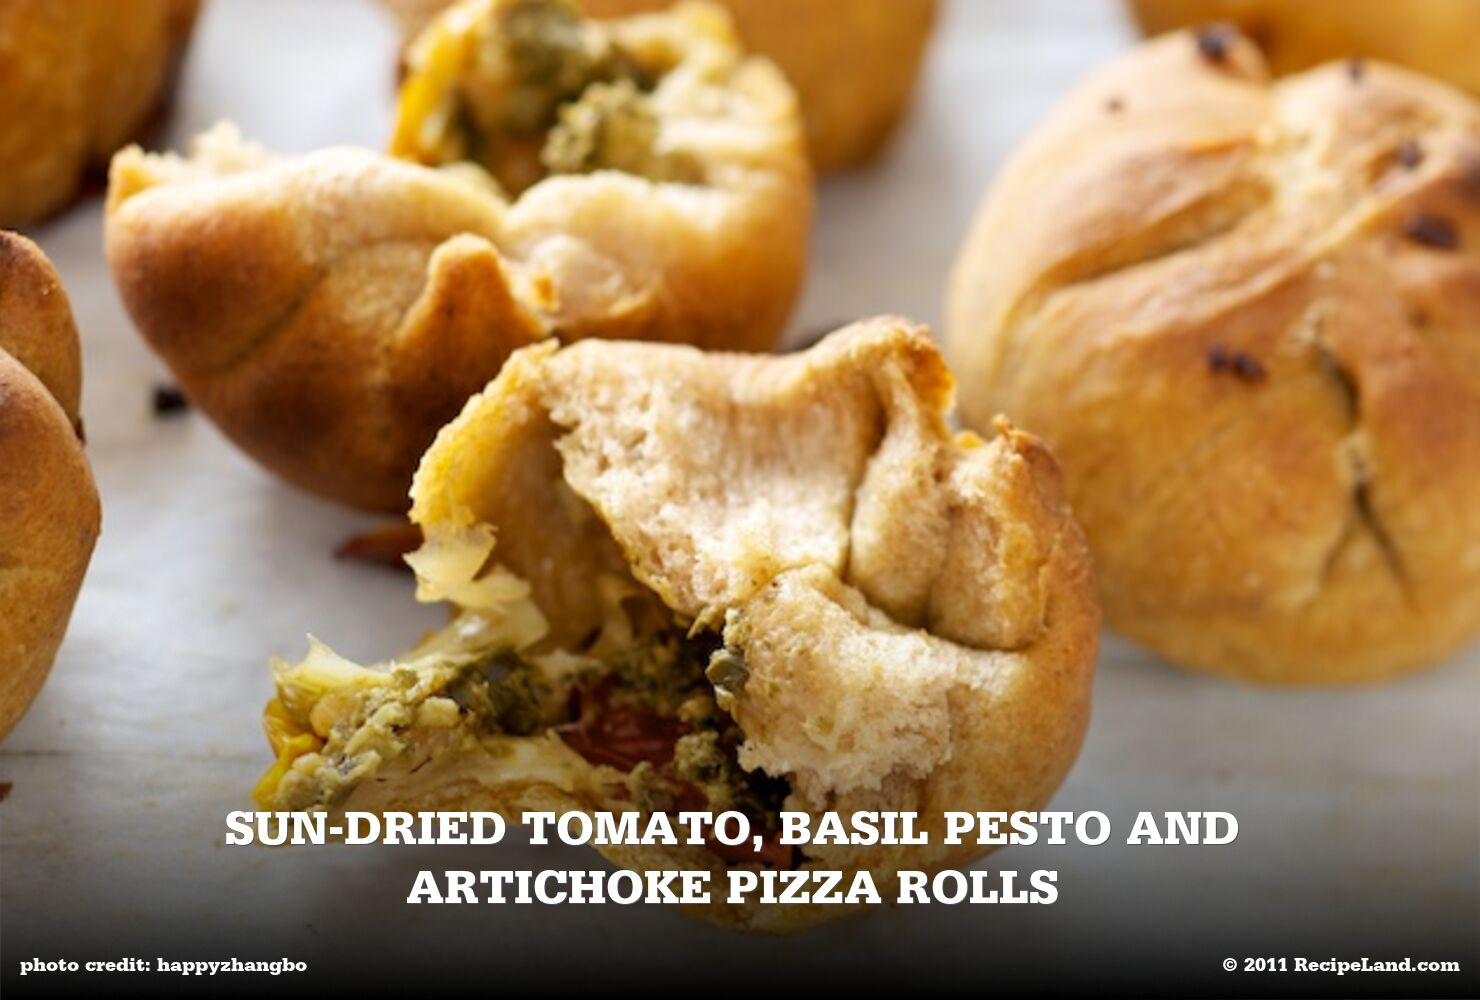 Sun-dried Tomato, Basil Pesto and Artichoke Pizza Rolls